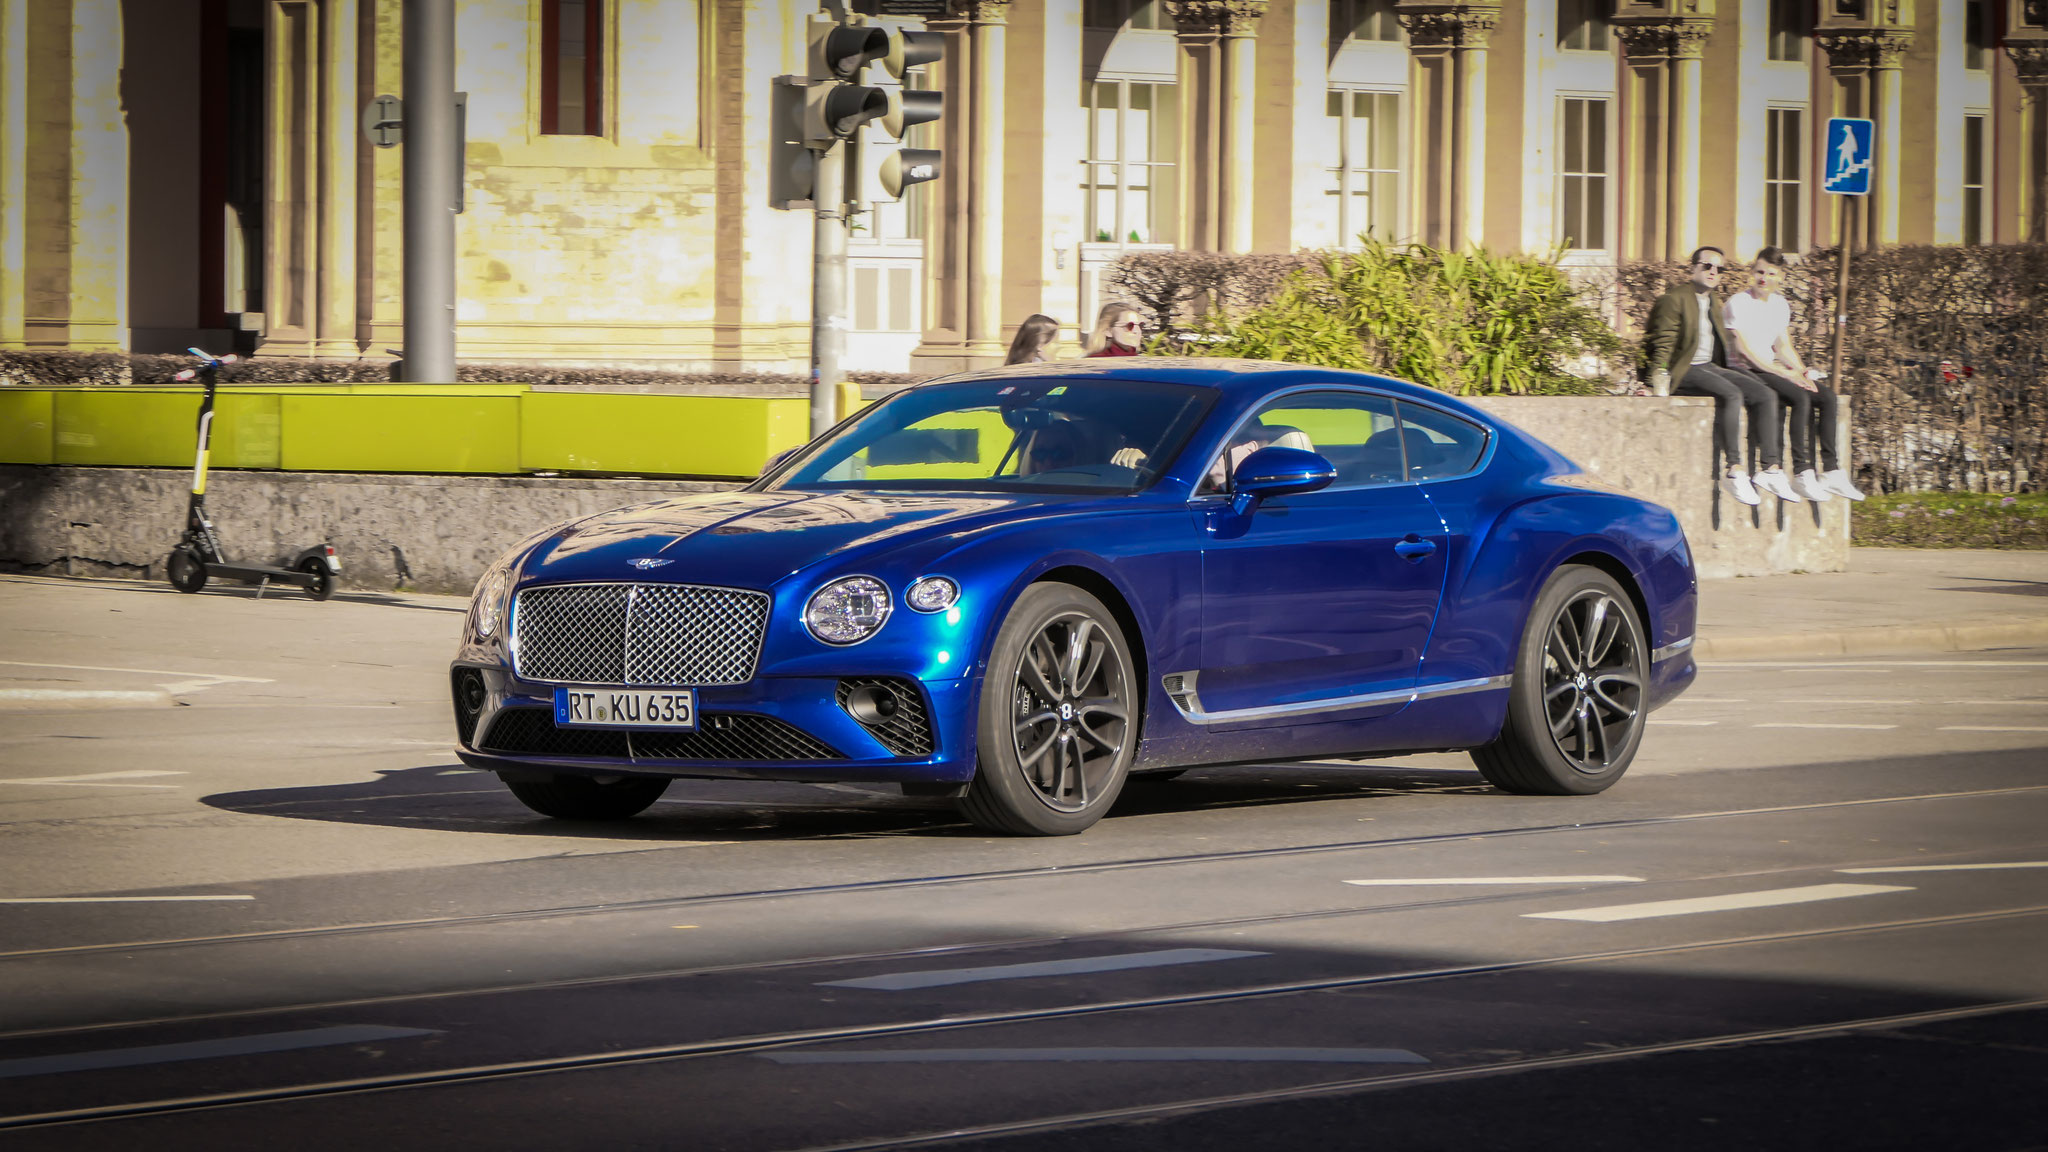 Bentley Continental GT - RT-KU-635